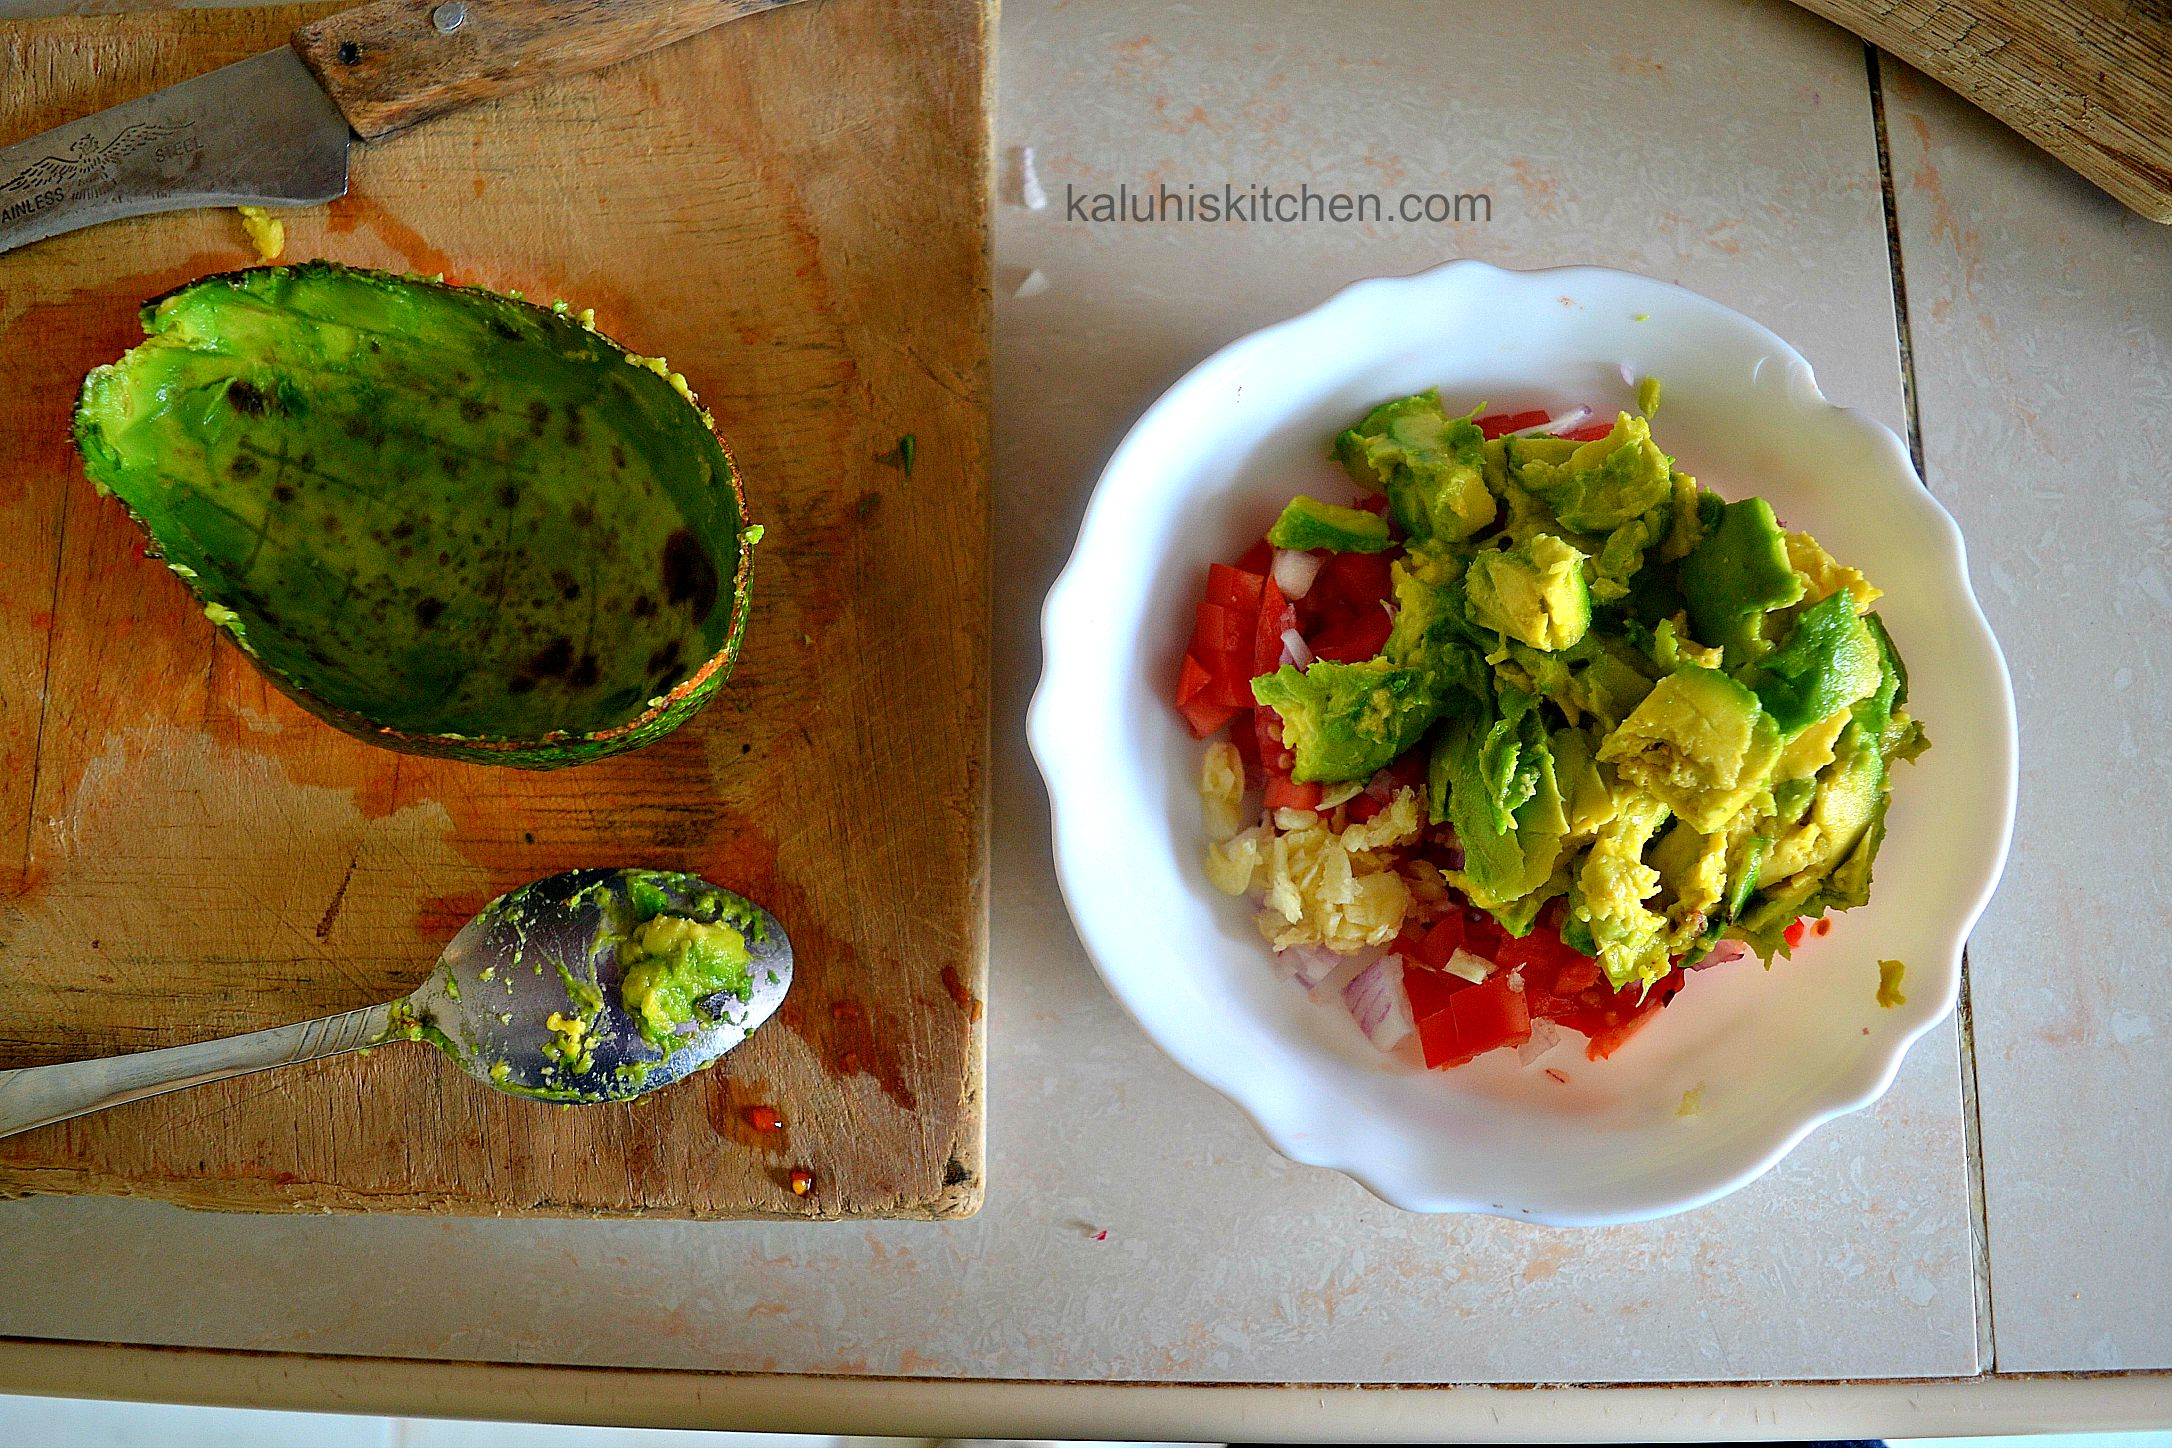 ensure your avocado is ripe before using it in your guacamole_a raw avocado will not mix as well and an overripe avocado will result in avocado soup instead of guacamole